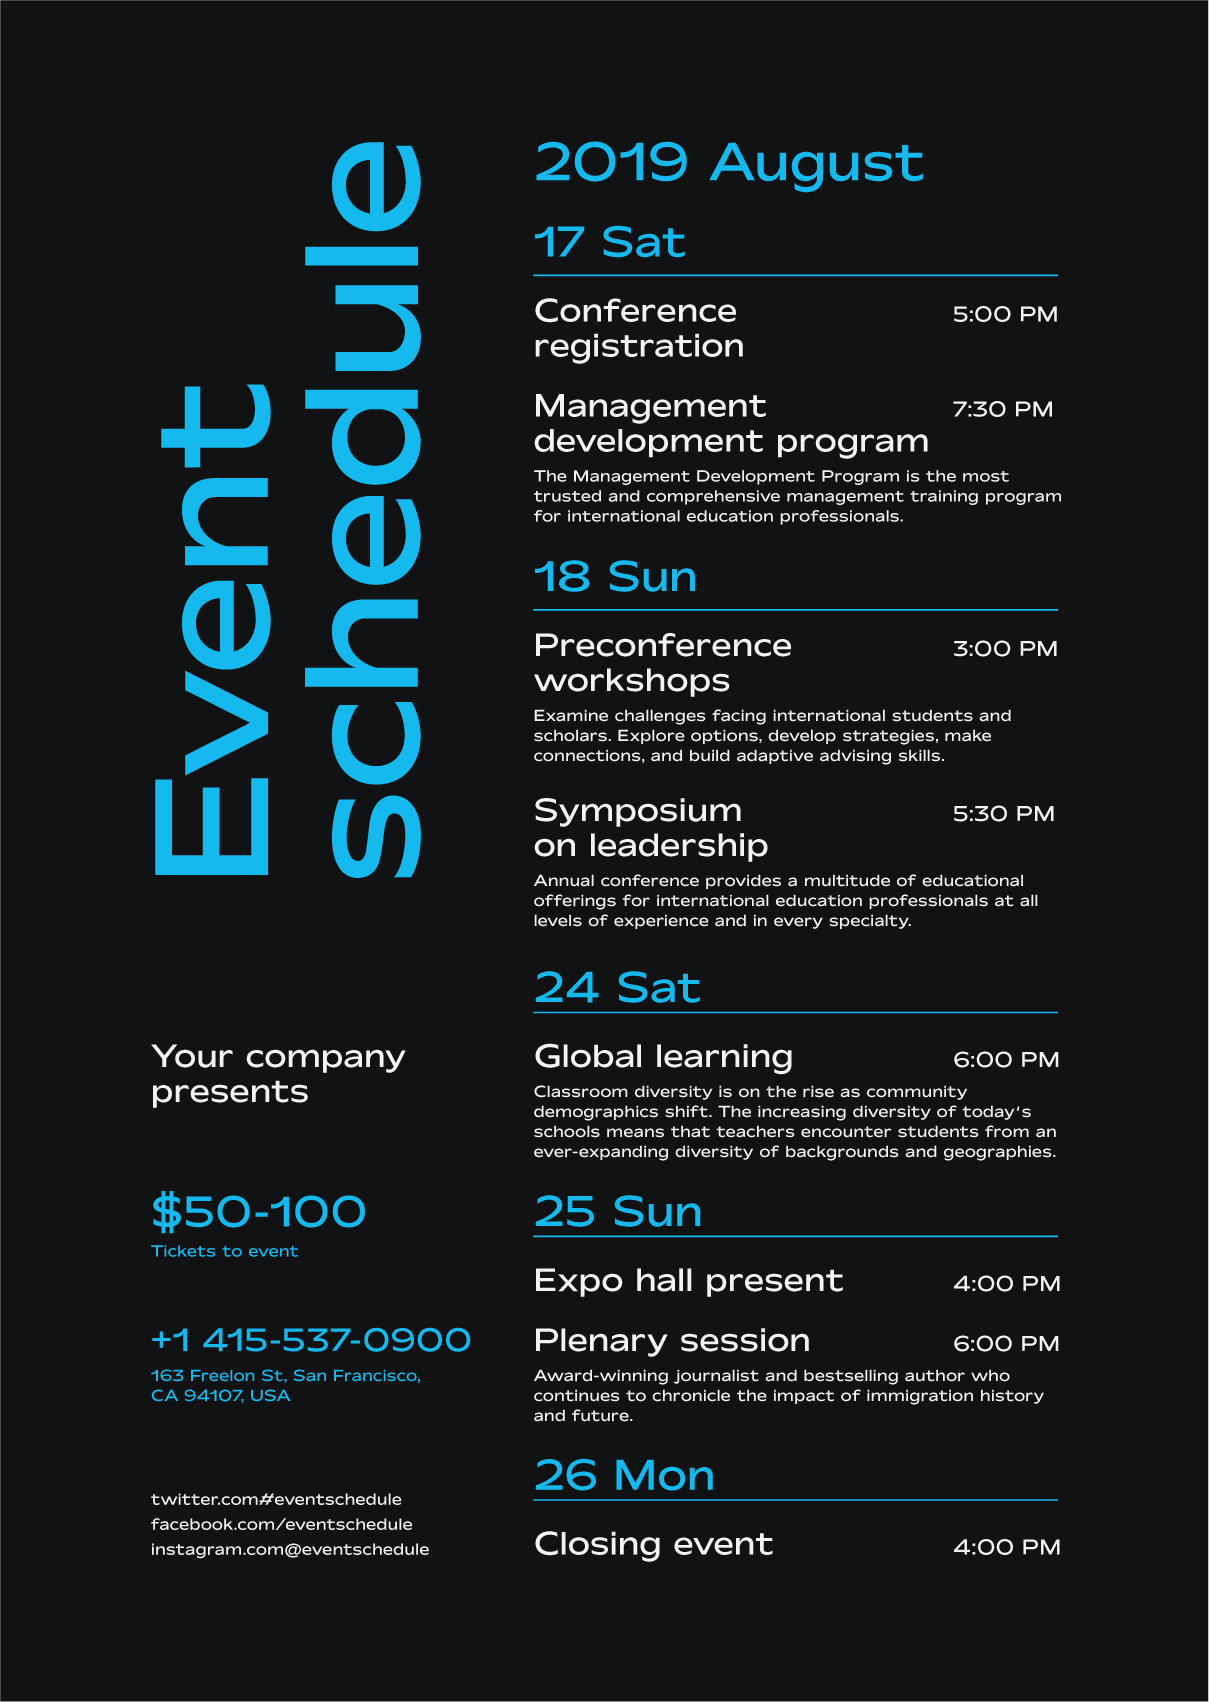 Schedule Event Poster Template Event Schedule Design Event Poster Template Event Poster Design